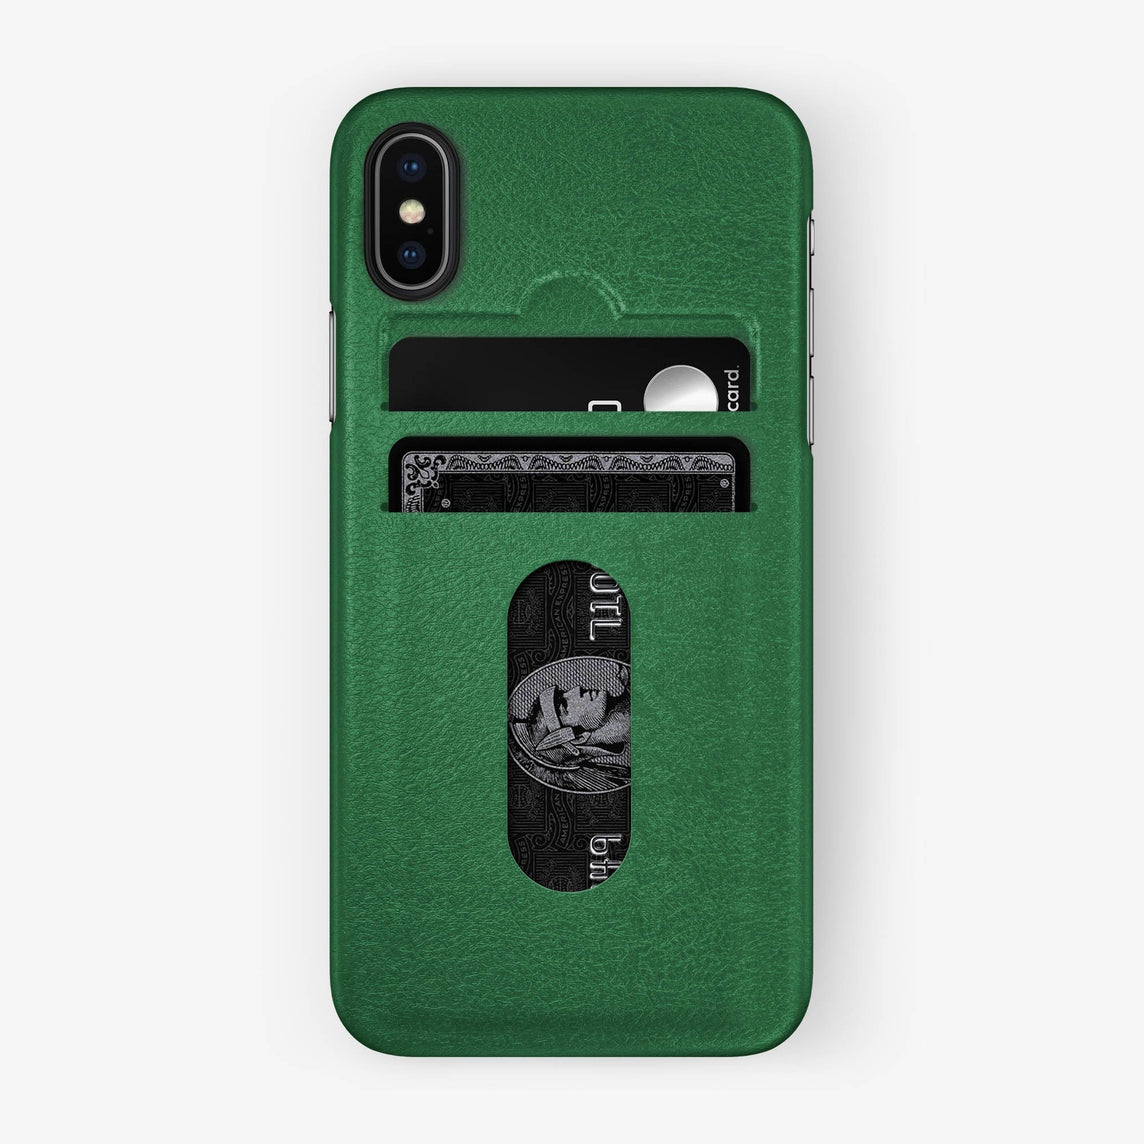 Calfskin [iPhone Card Holder Case] [model:iphone-x-case] [colour:green] [finishing:black]